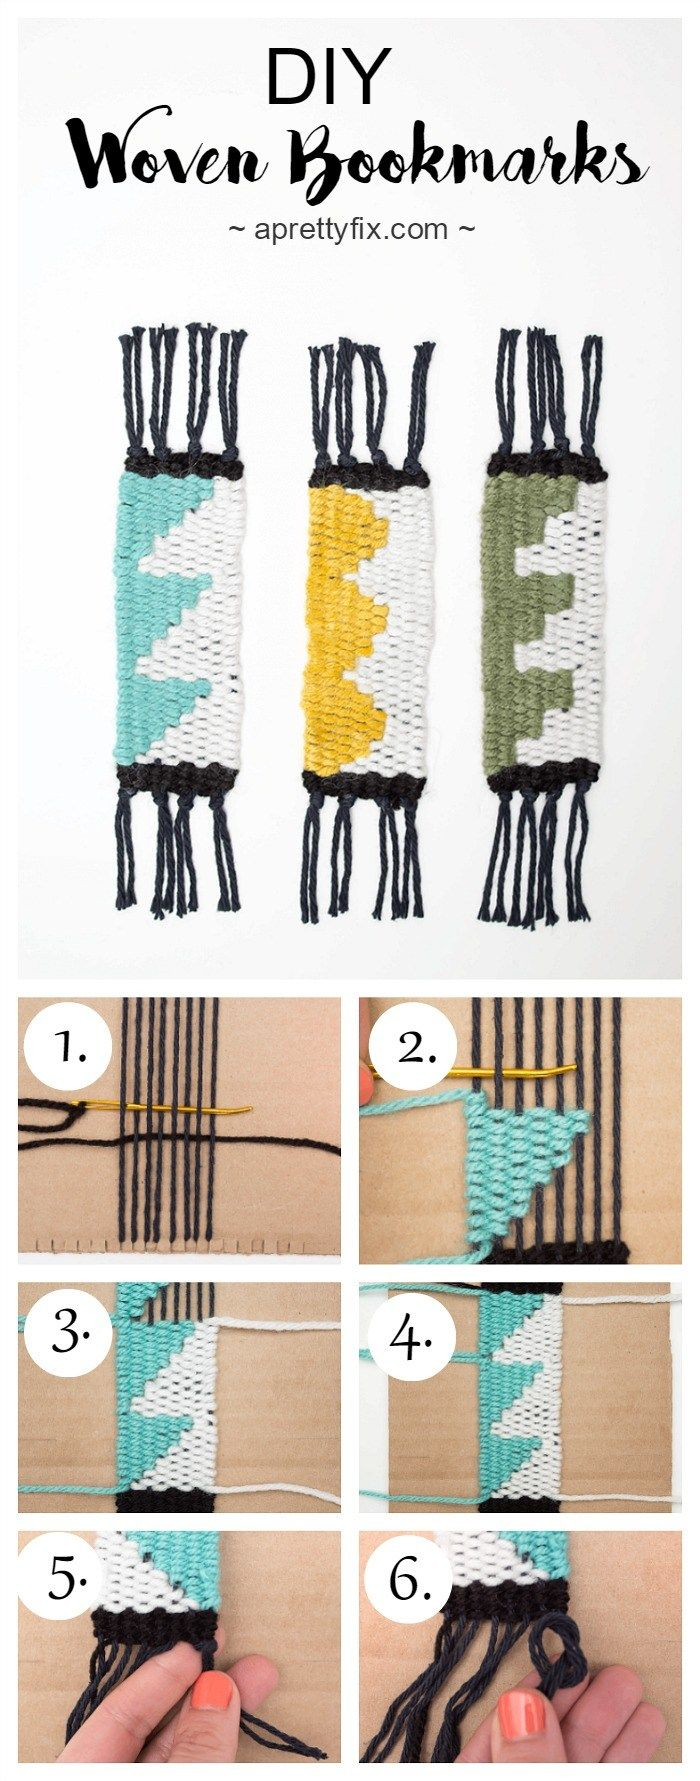 DIY Woven Bookmarks For Beginners  Bookmarks Craft and Post today